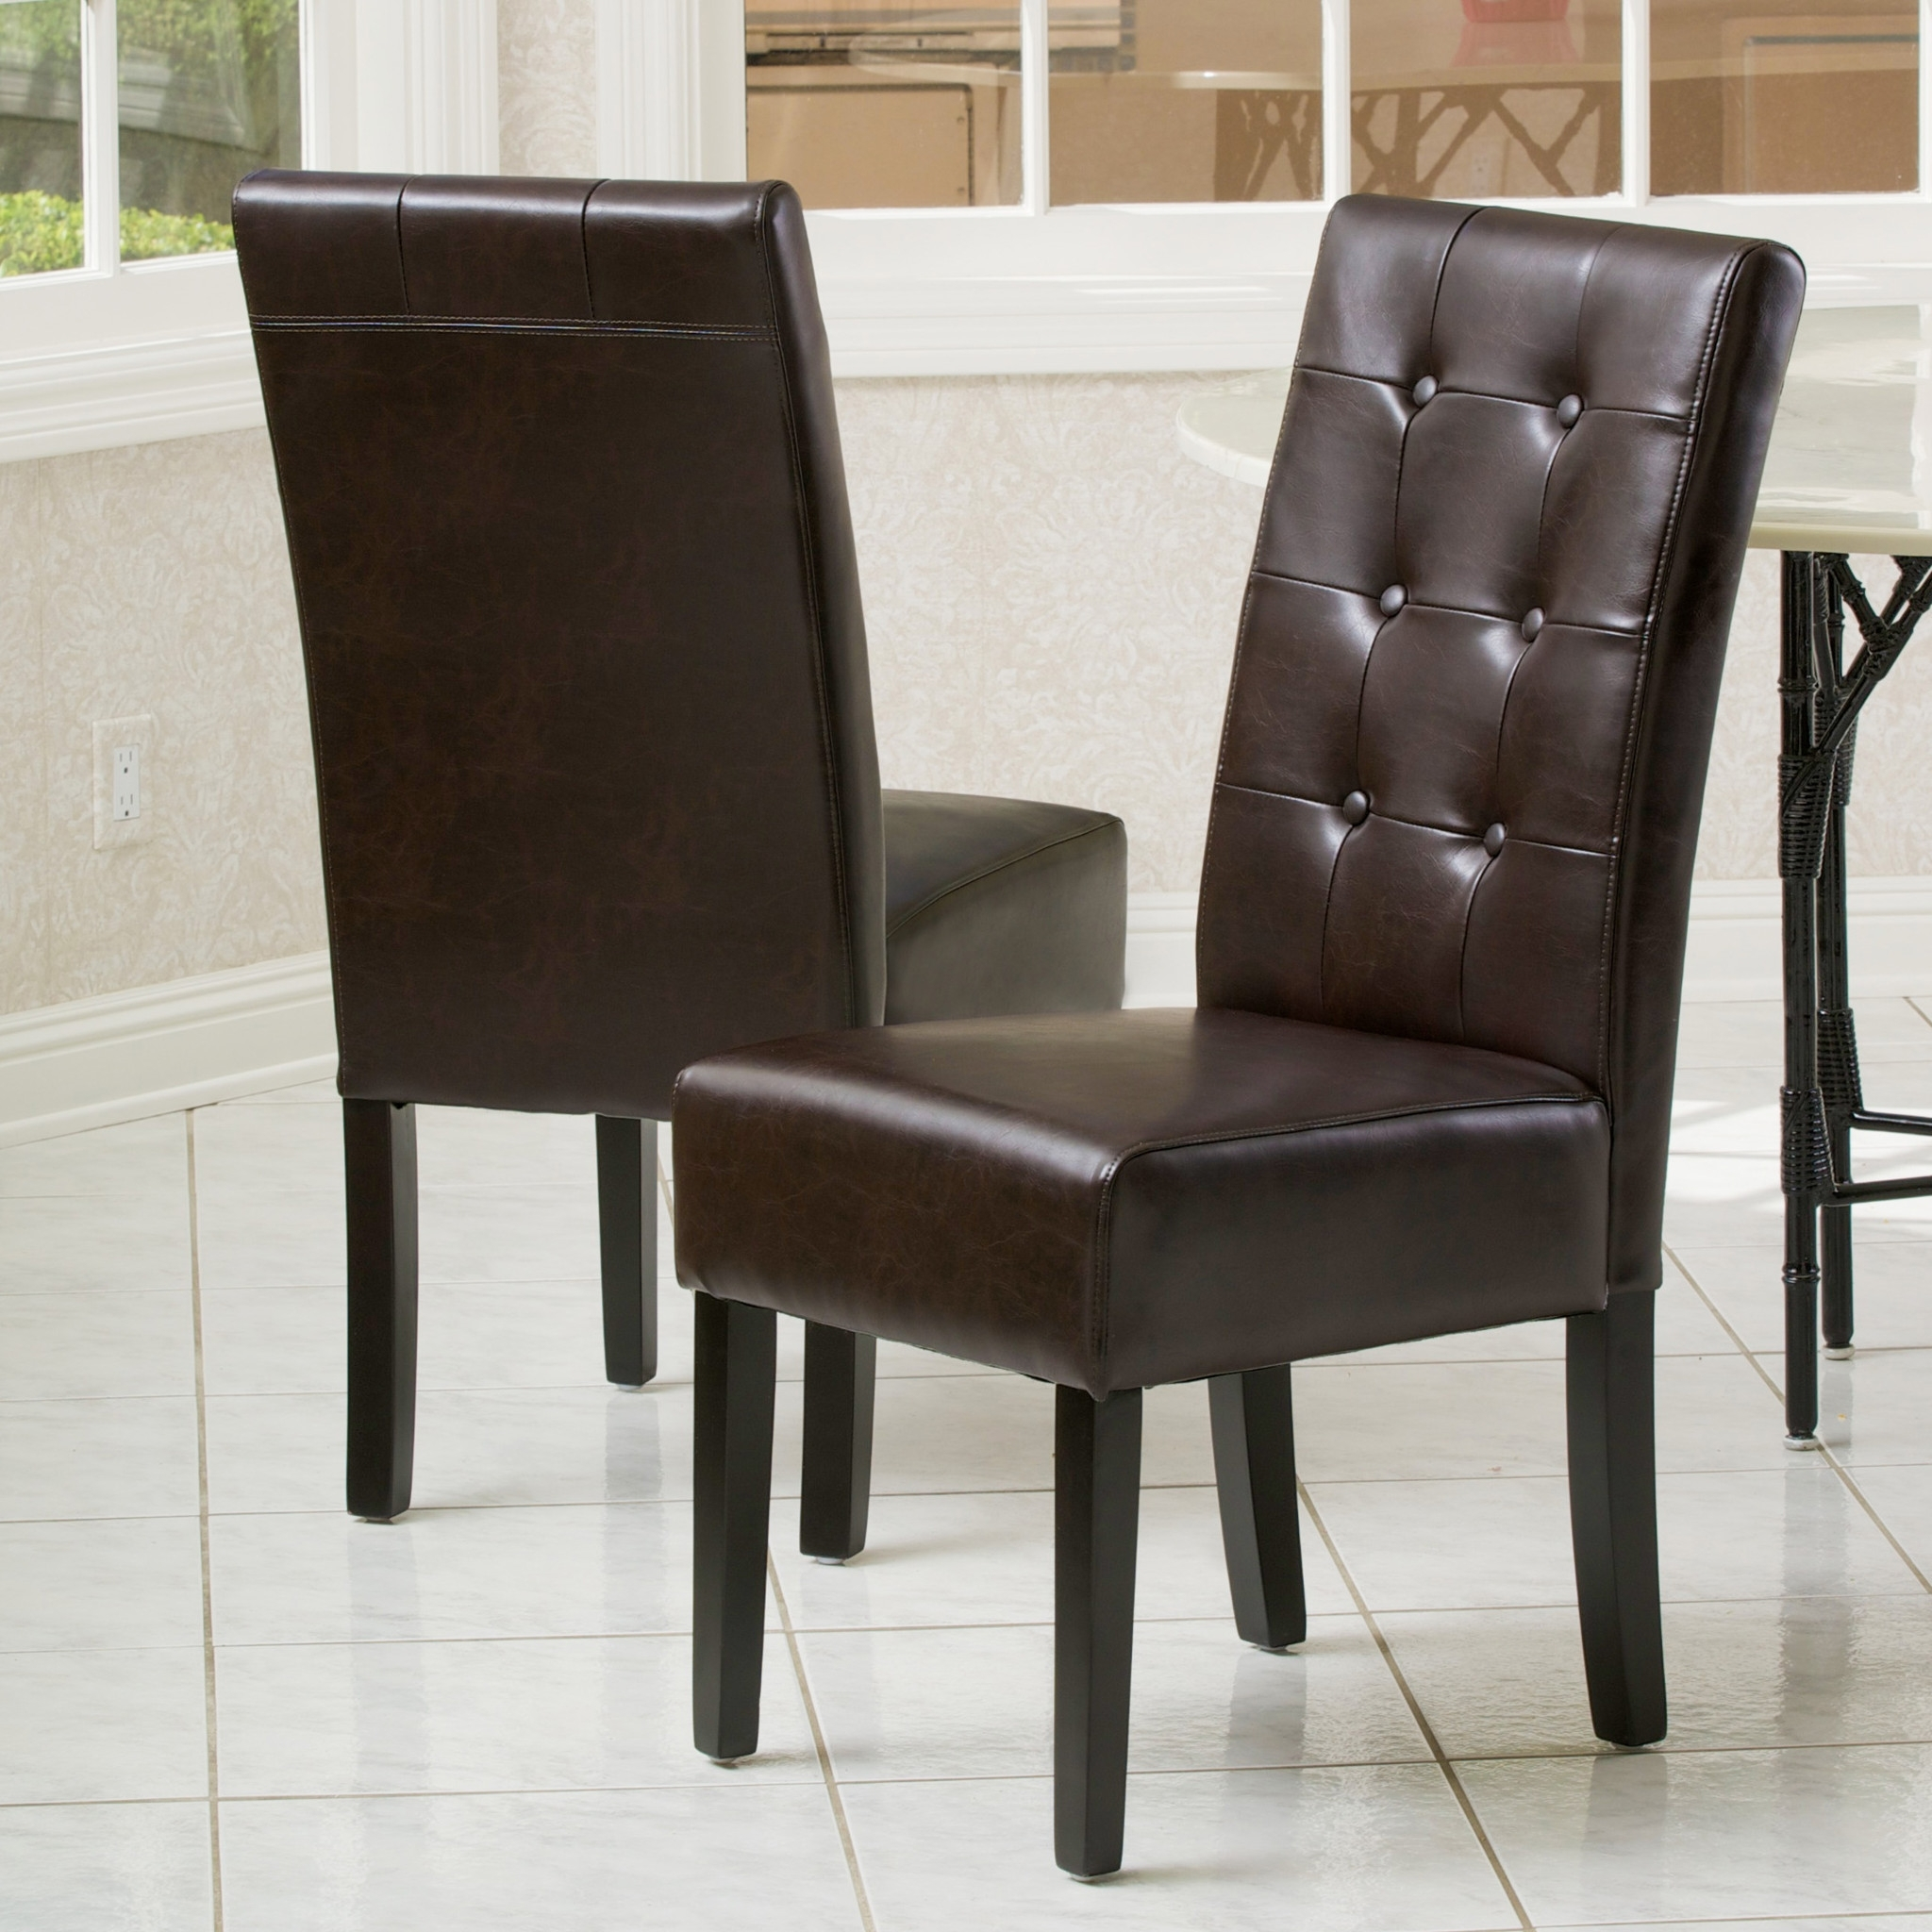 The 26 Lovely Dark Brown Wood Dining Chairs – Fernando Rees For Newest Dark Brown Leather Dining Chairs (View 4 of 25)